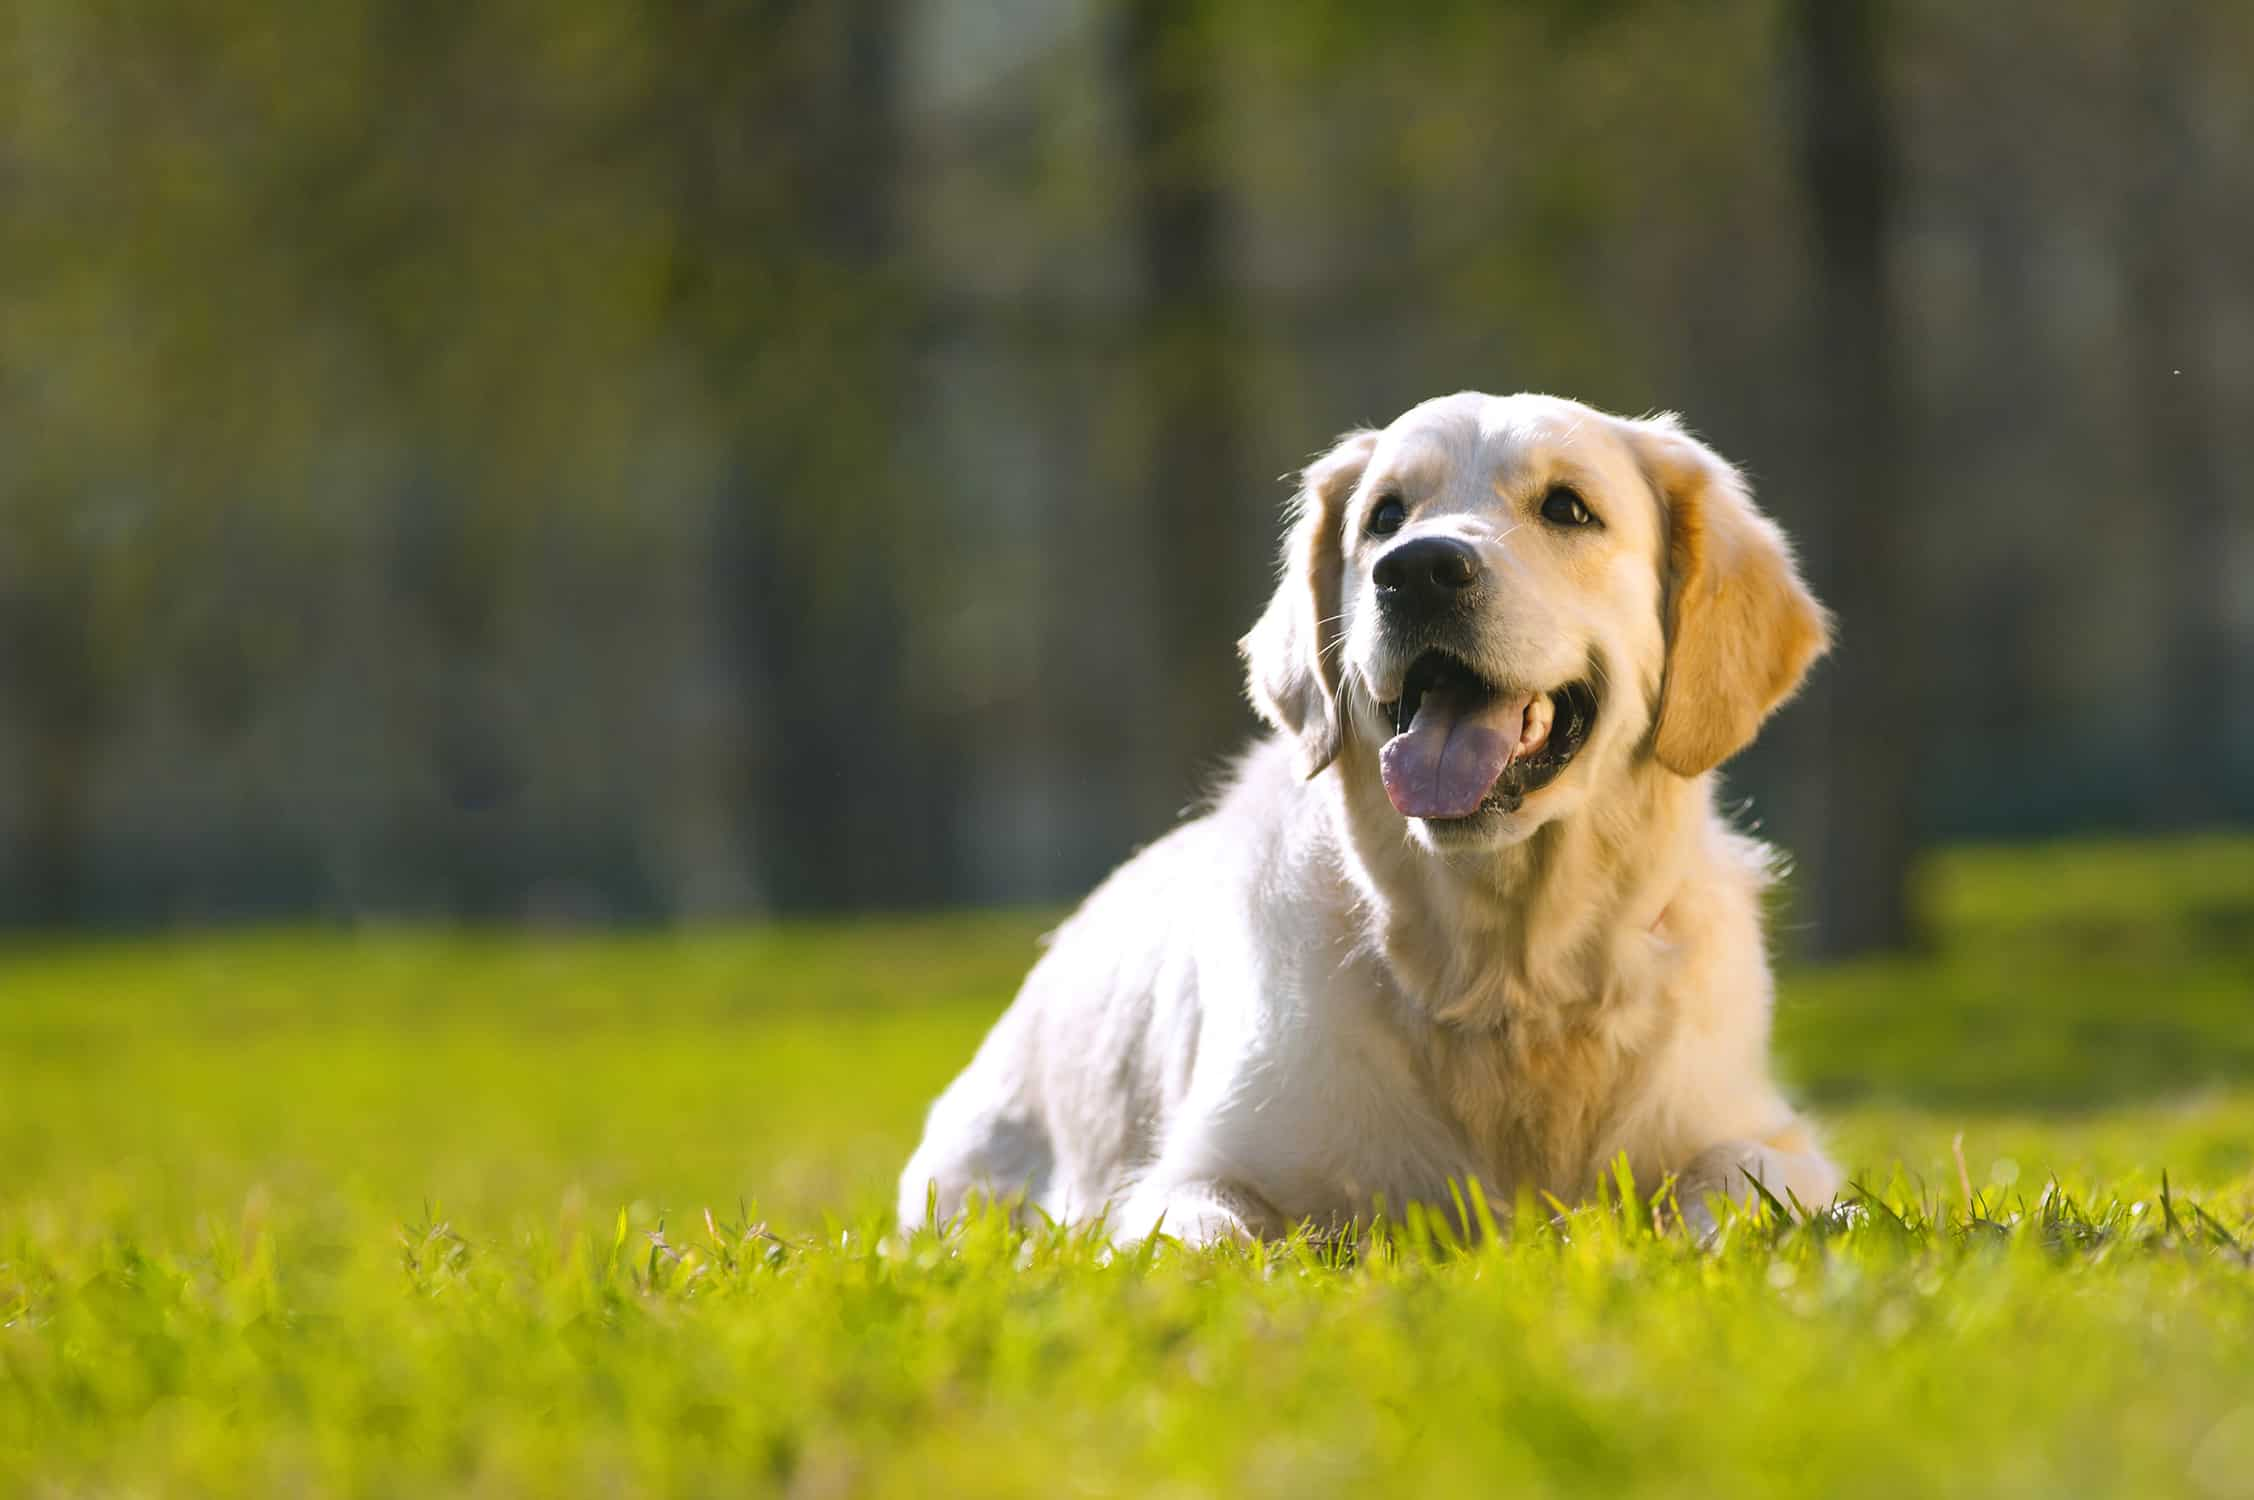 yellow labrador retriever laying down in grass field with mouth open and tongue out